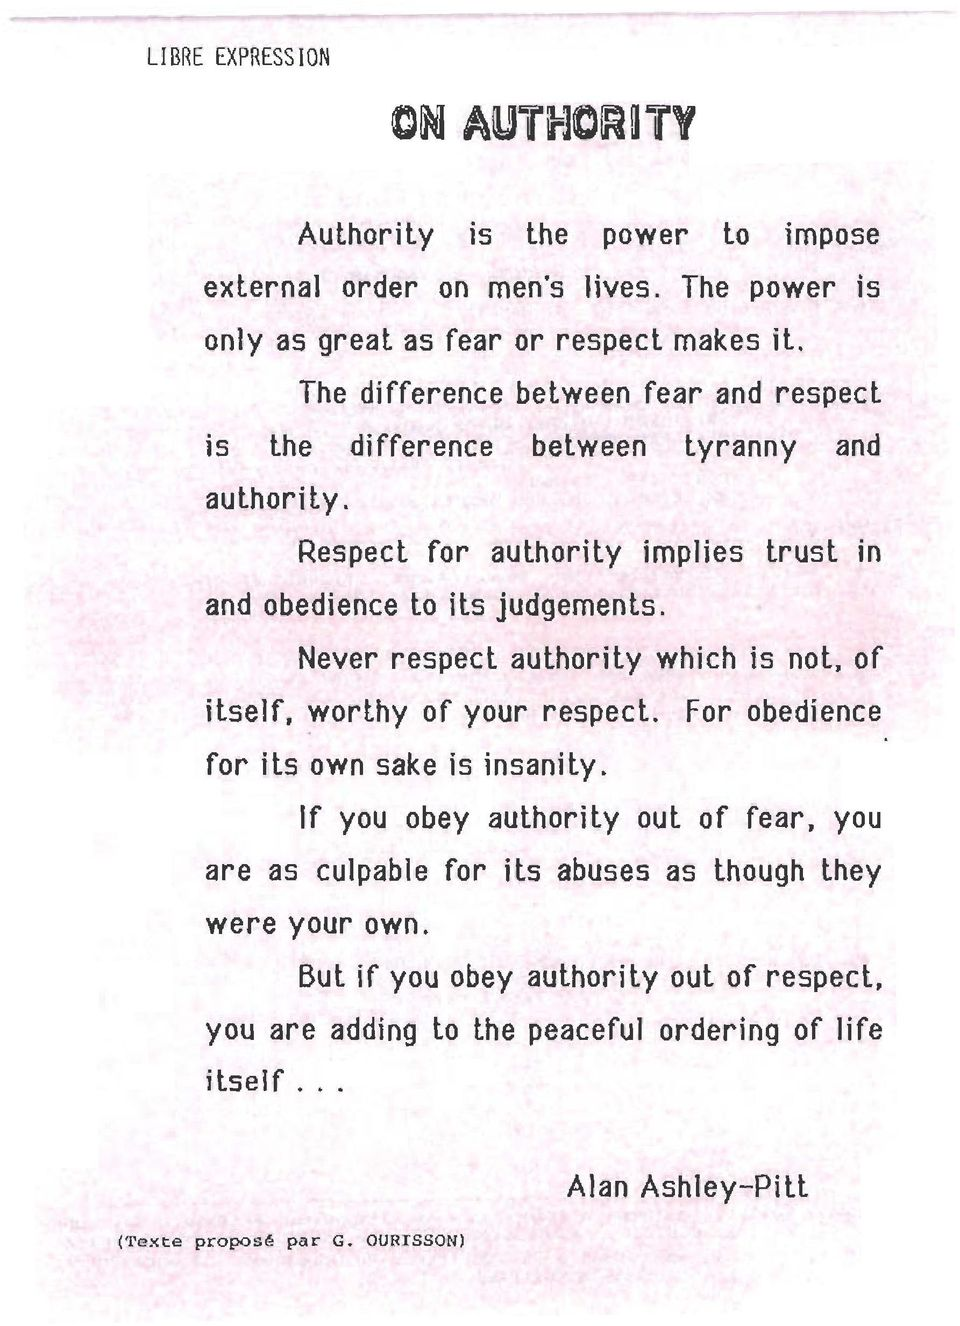 Never respect authority which is not, of itself, worthy of your respect. For obedience for its own sake is insanity.